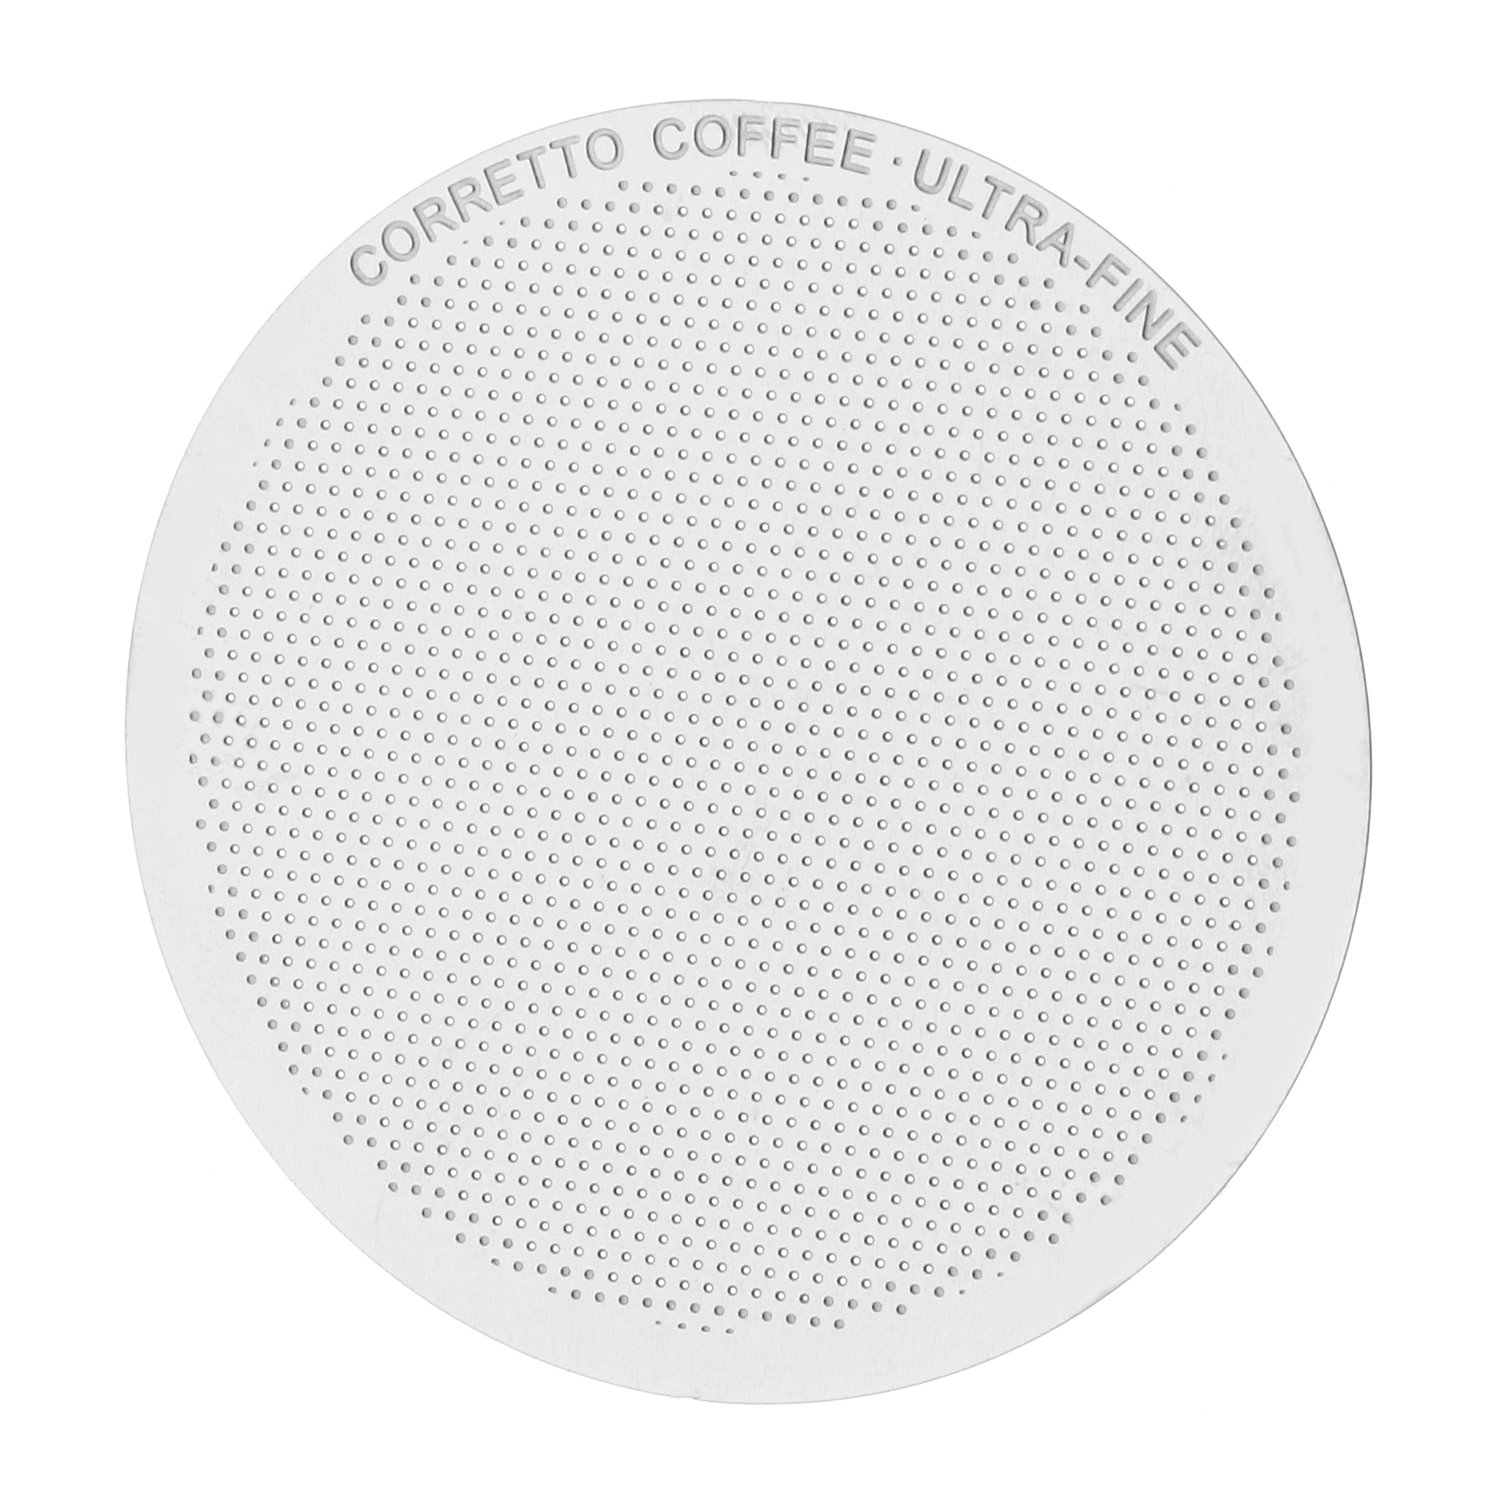 1 ULTRA-FINE Pro Reusable Filter for use in AeroPress Coffee Maker, Premium Stainless Steel, Brewing Guide Included & 100% Satisfaction Guarantee